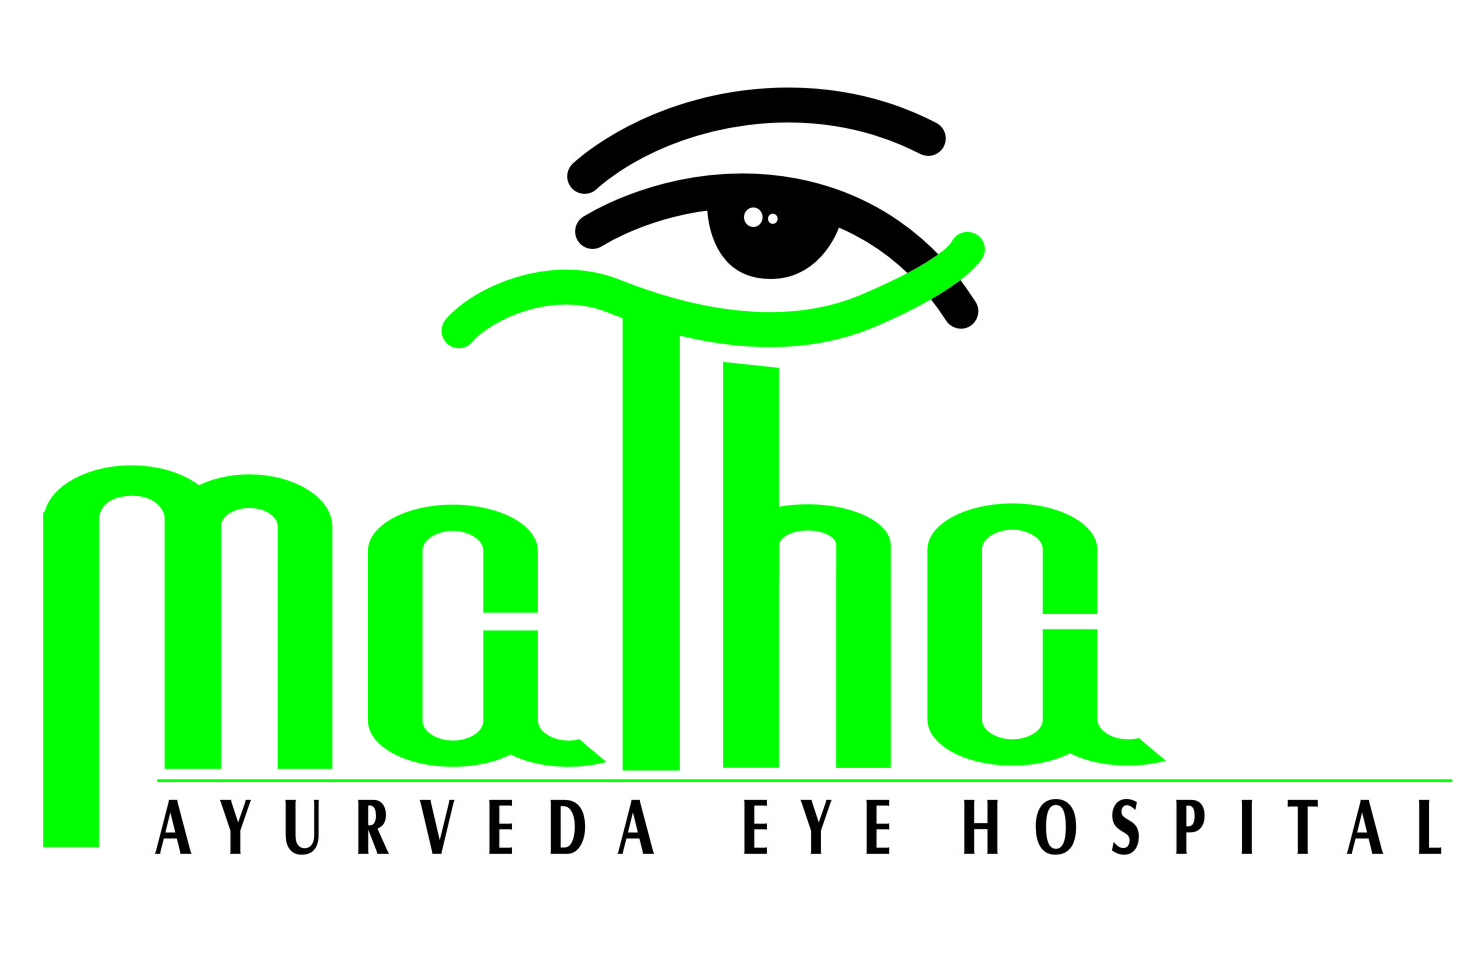 Matha-ayurveda-eye-hospital-logo.jpg